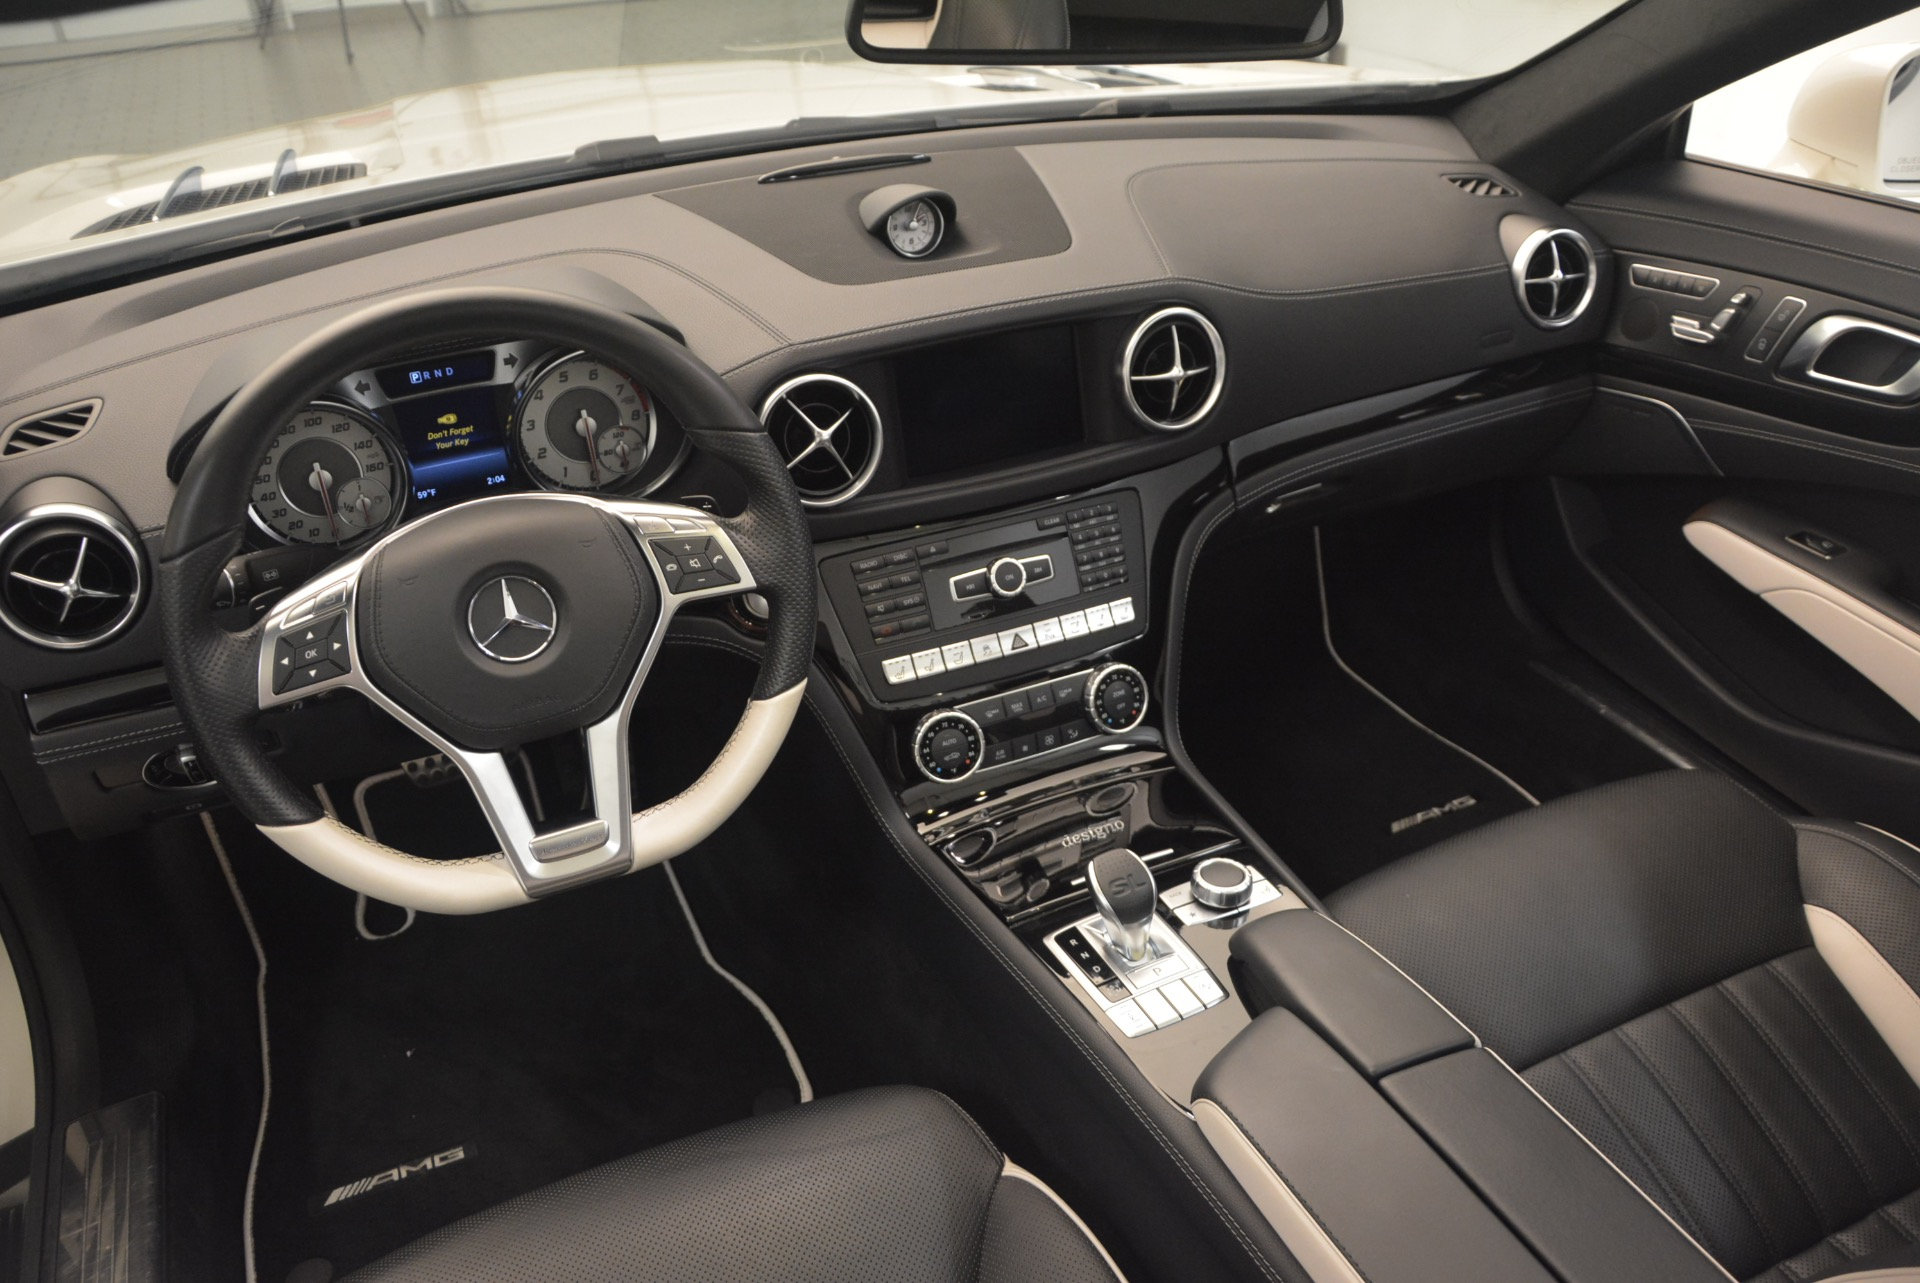 Used 2015 Mercedes Benz SL-Class SL 550 For Sale In Greenwich, CT 1261_p32